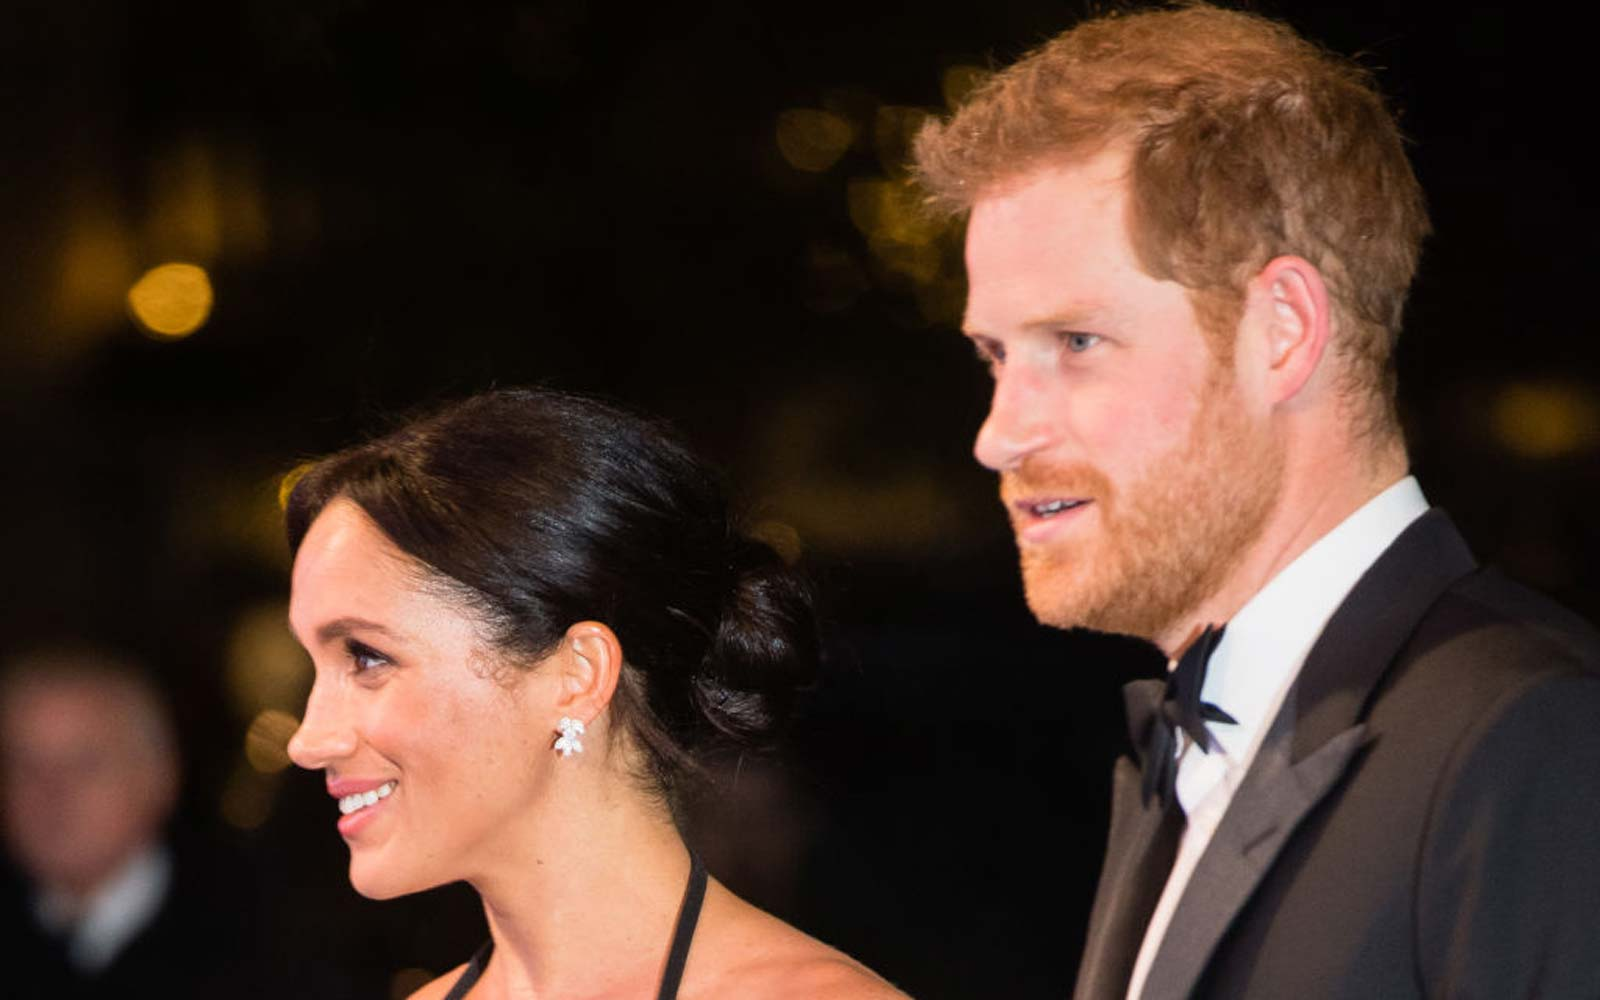 Meghan, Duchess of Sussex and Prince Harry, Duke of Sussex arrive at The Royal Variety Performance 2018 at London Palladium